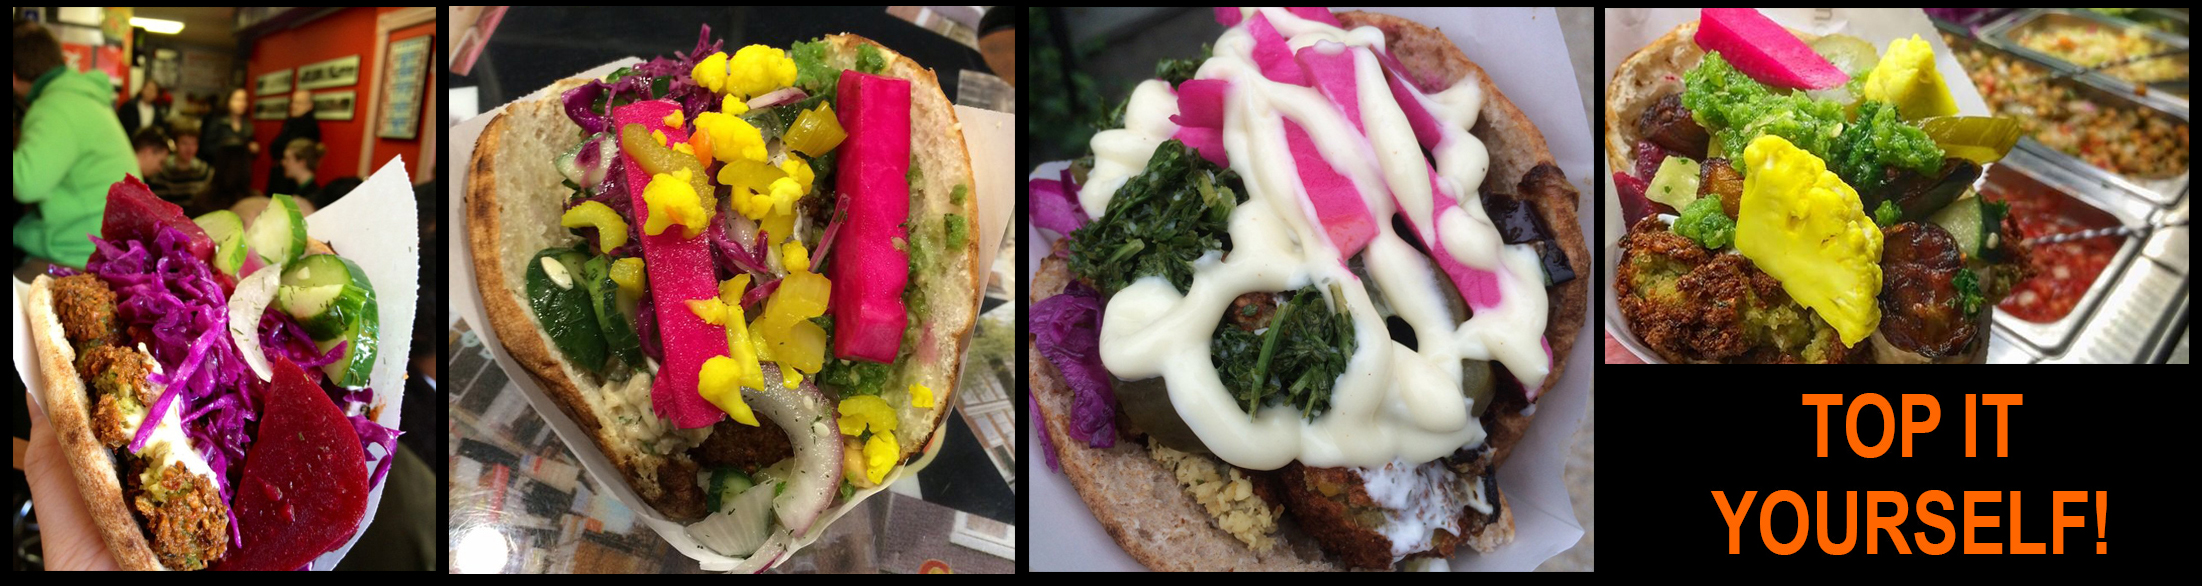 Images of Pita Sandwiches at AMsterdam Falafelshop